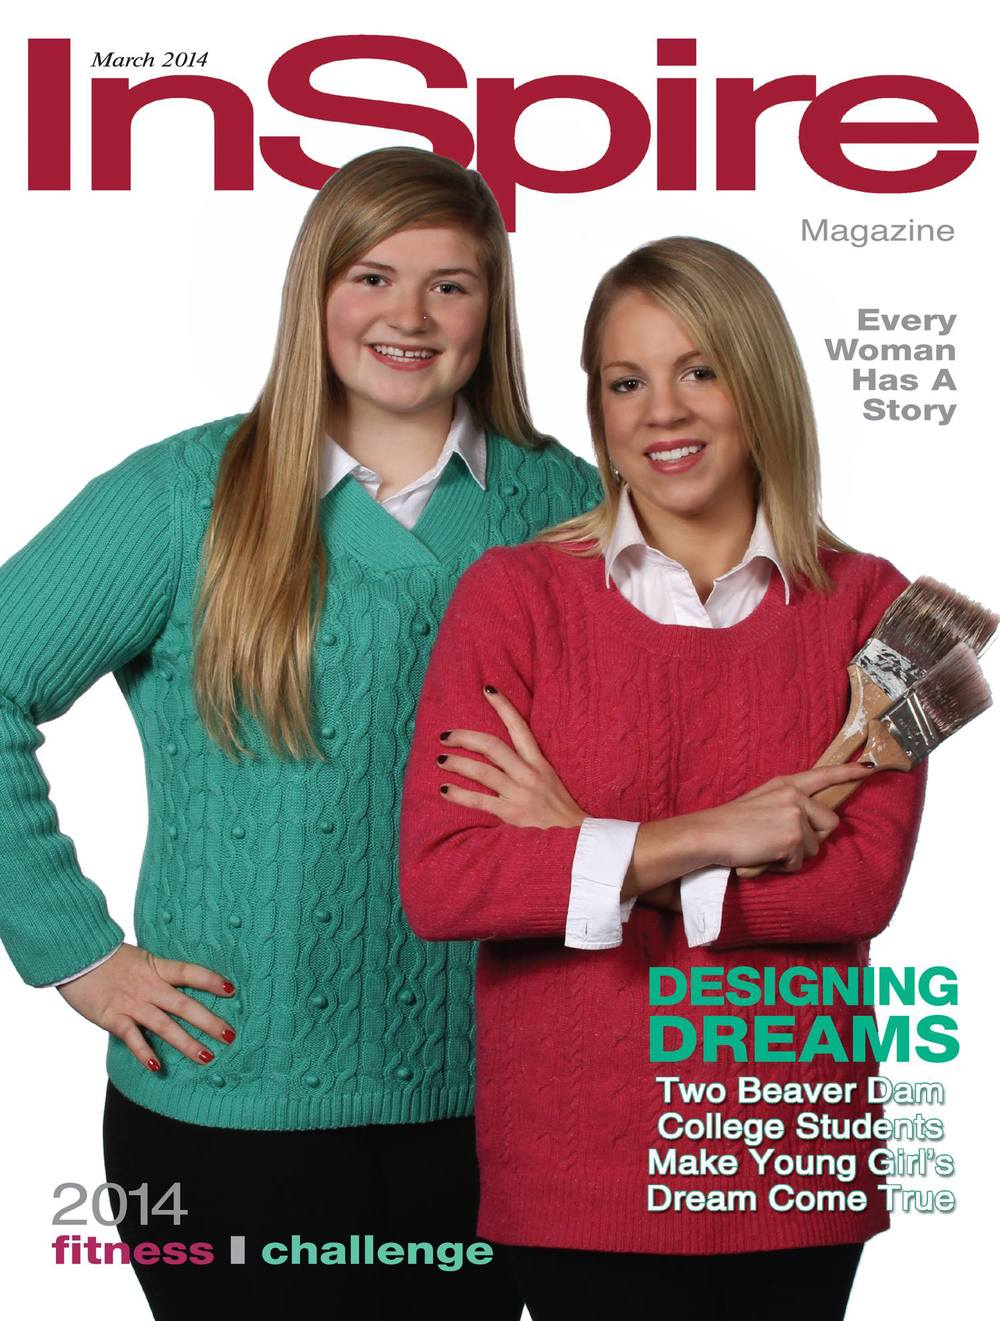 Teal Johnson and Lauren Curwick featured on the cover of InSpire, March 2014.